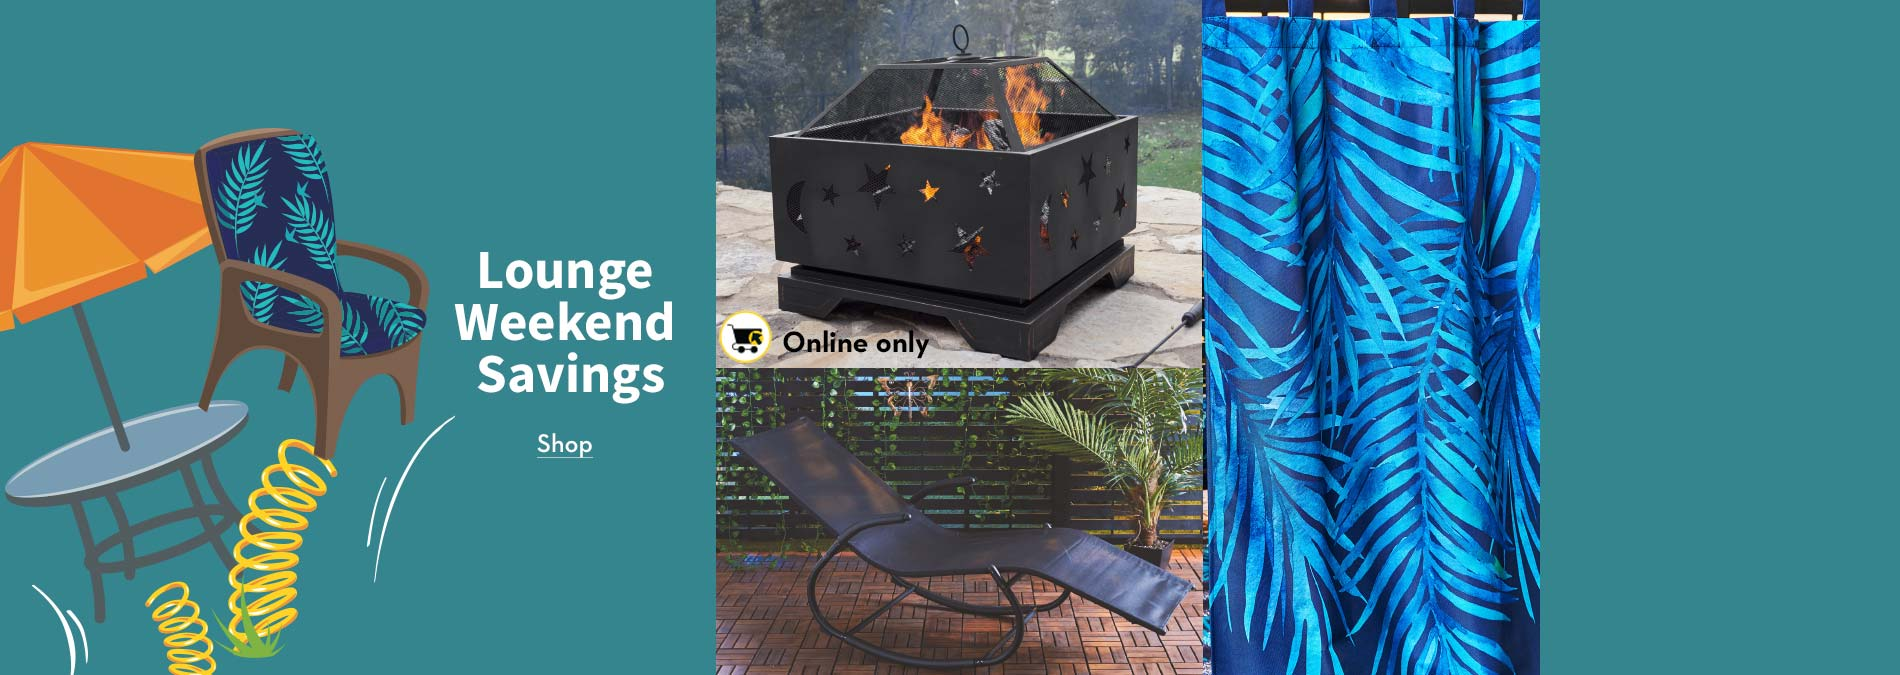 Lounge Weekend Savings. Outdoor living